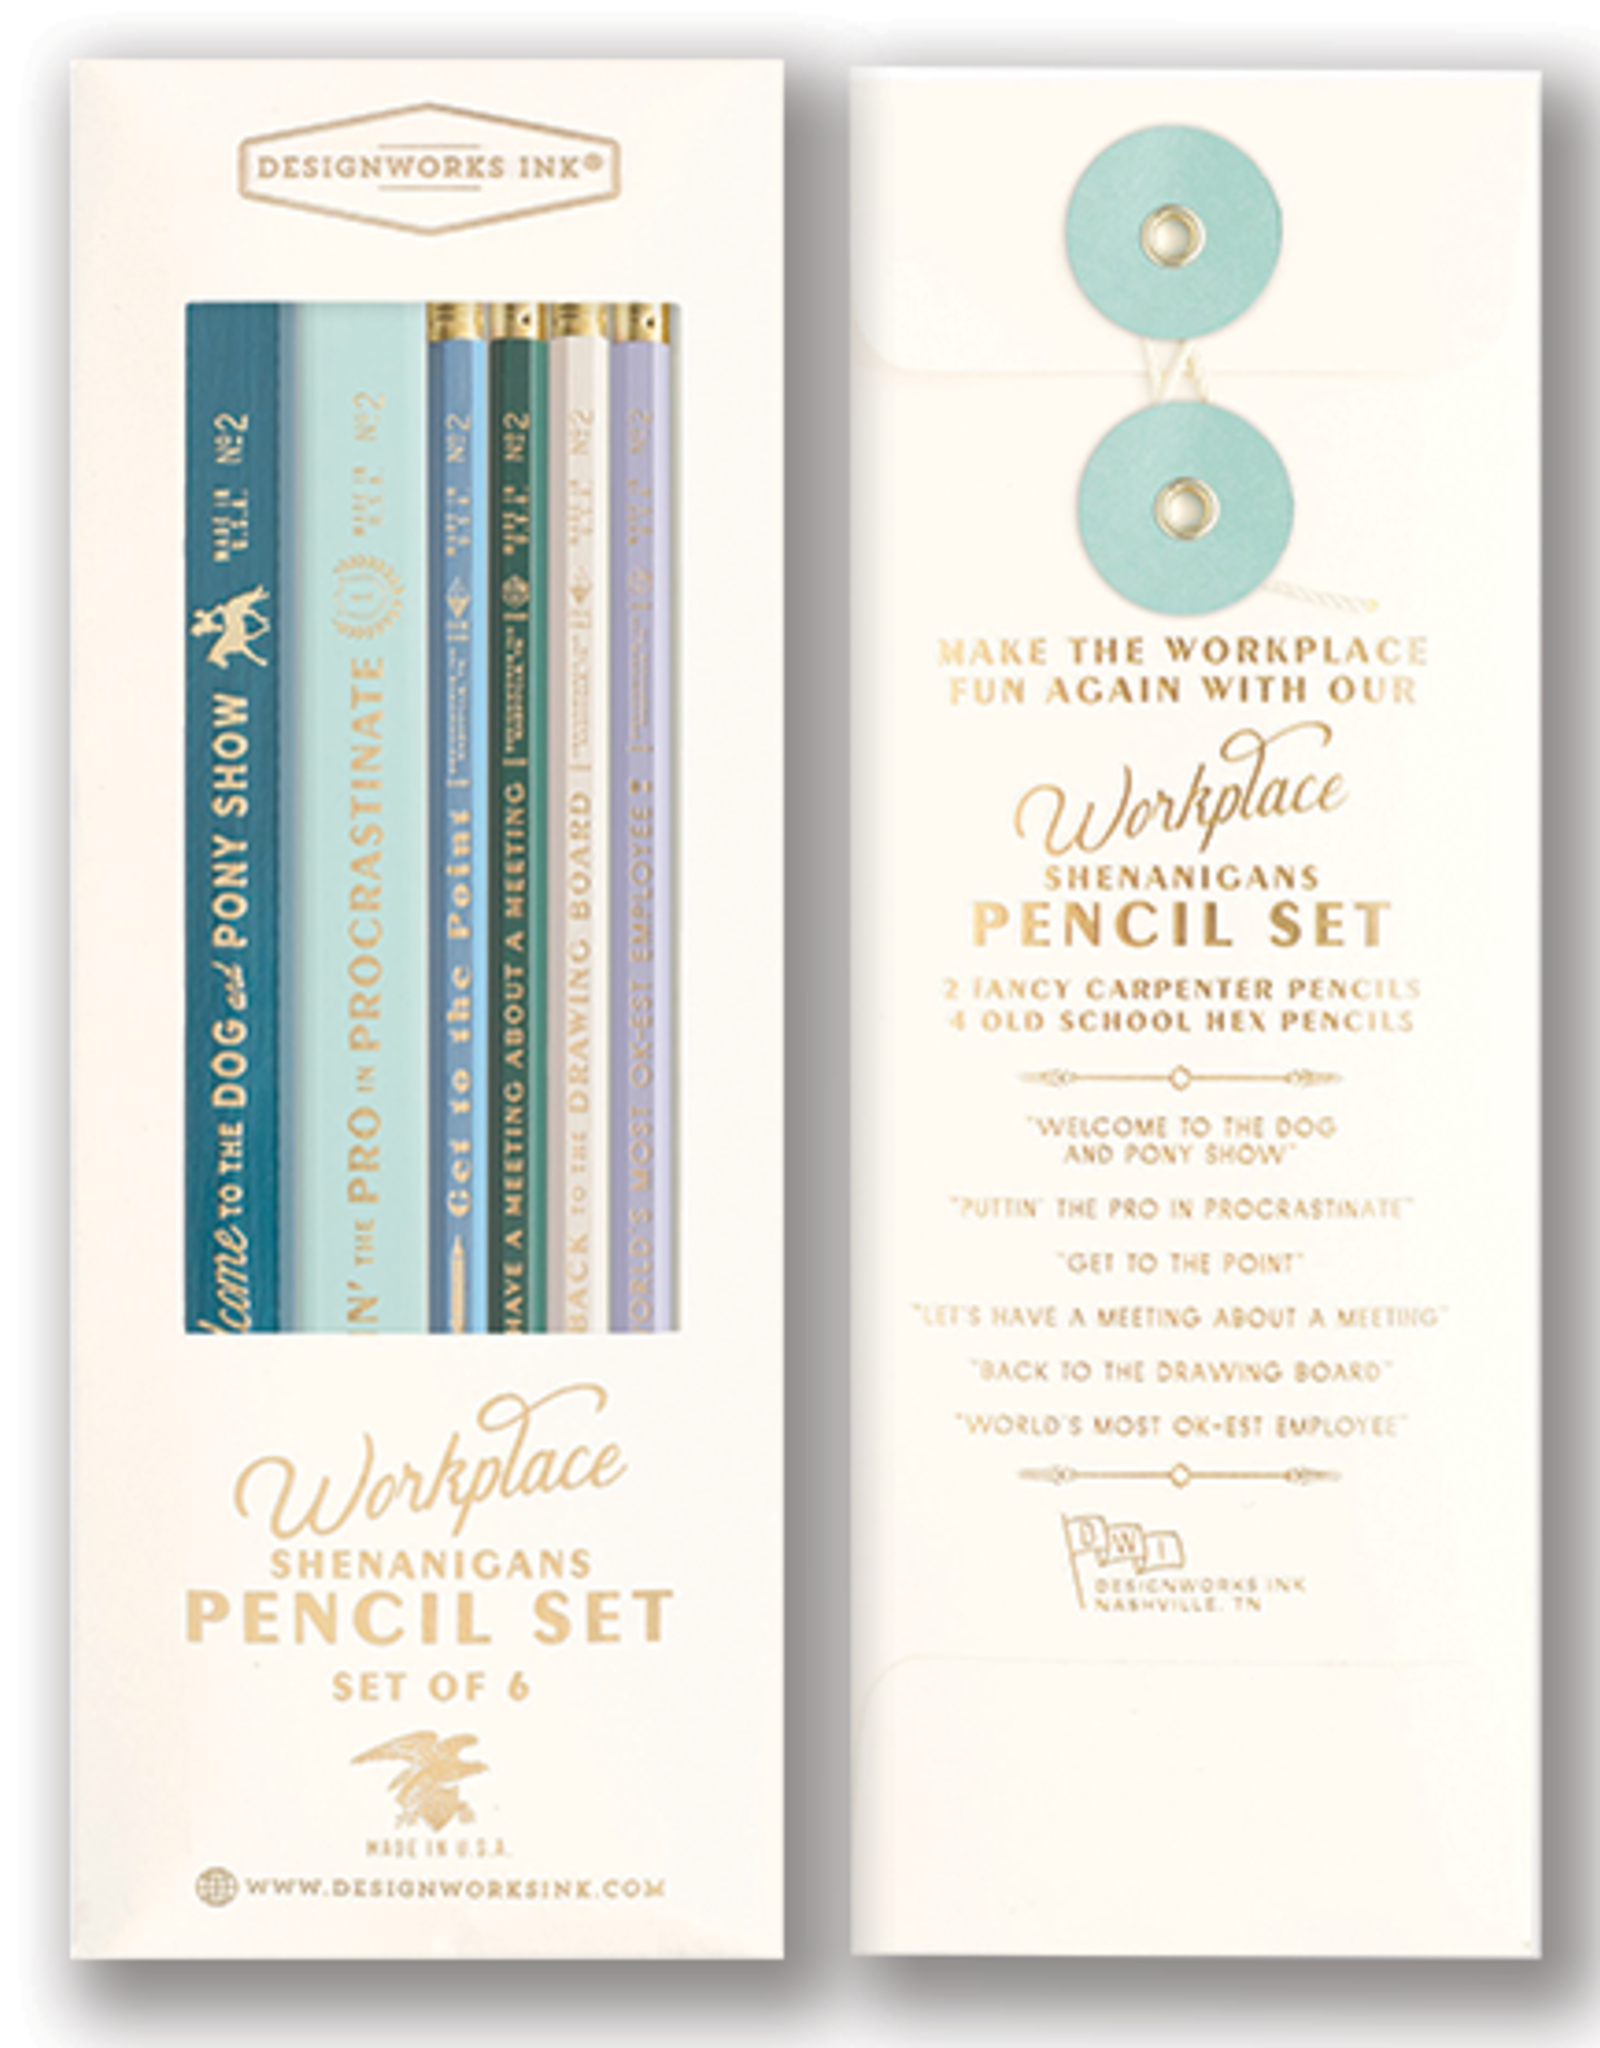 Project Planner Journal with Pencil Set